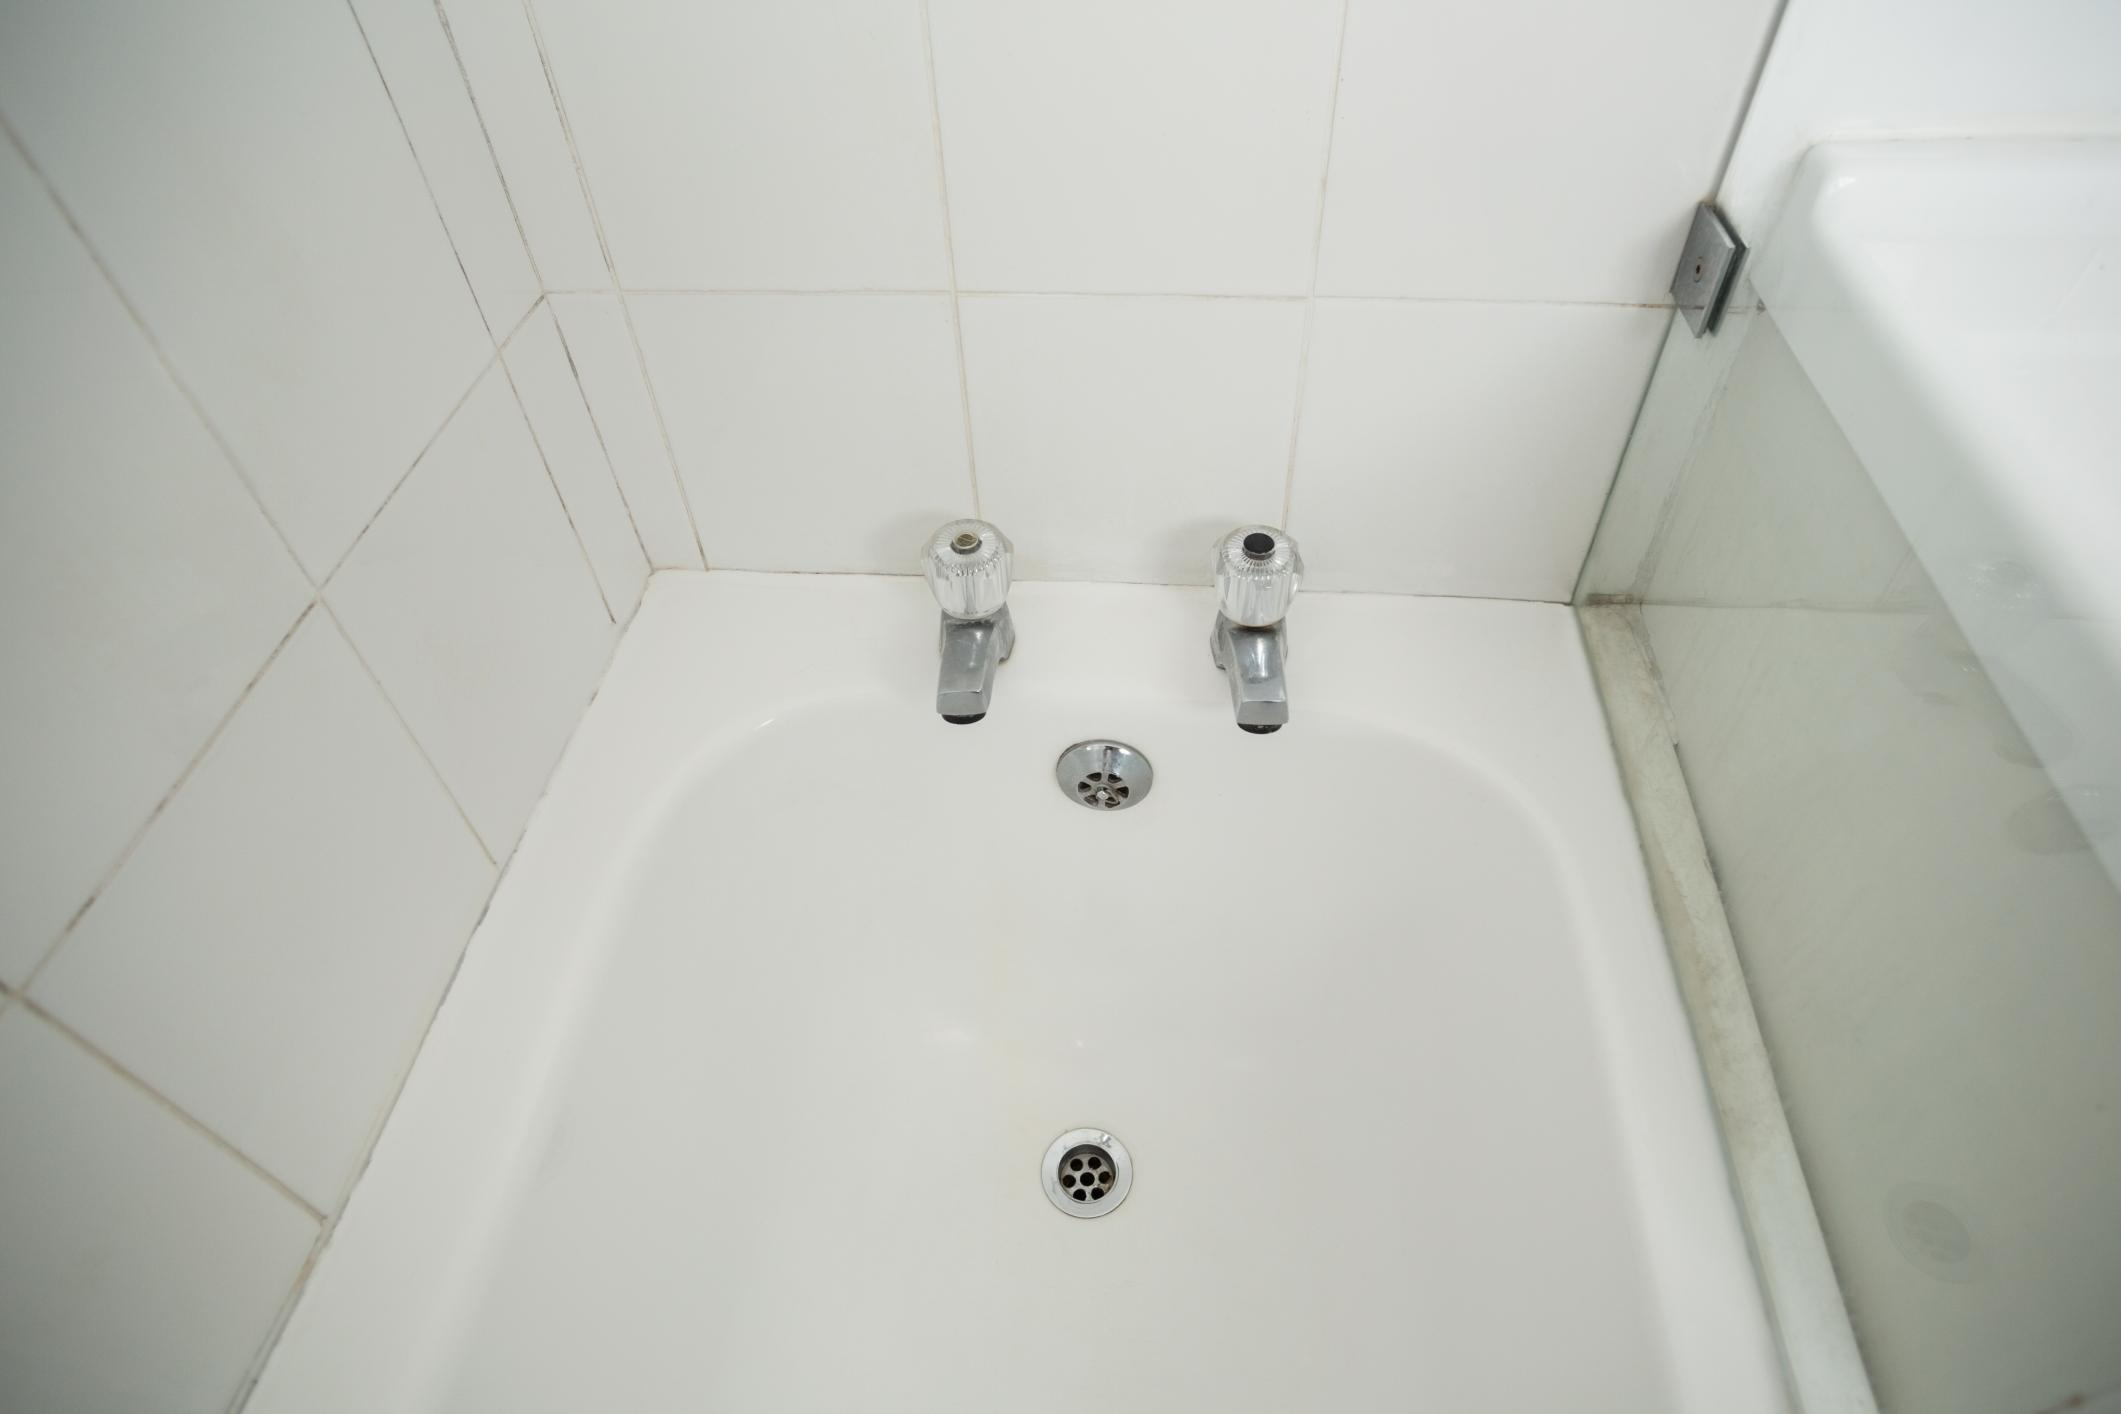 Bathtub Plumbing Services in North Bay